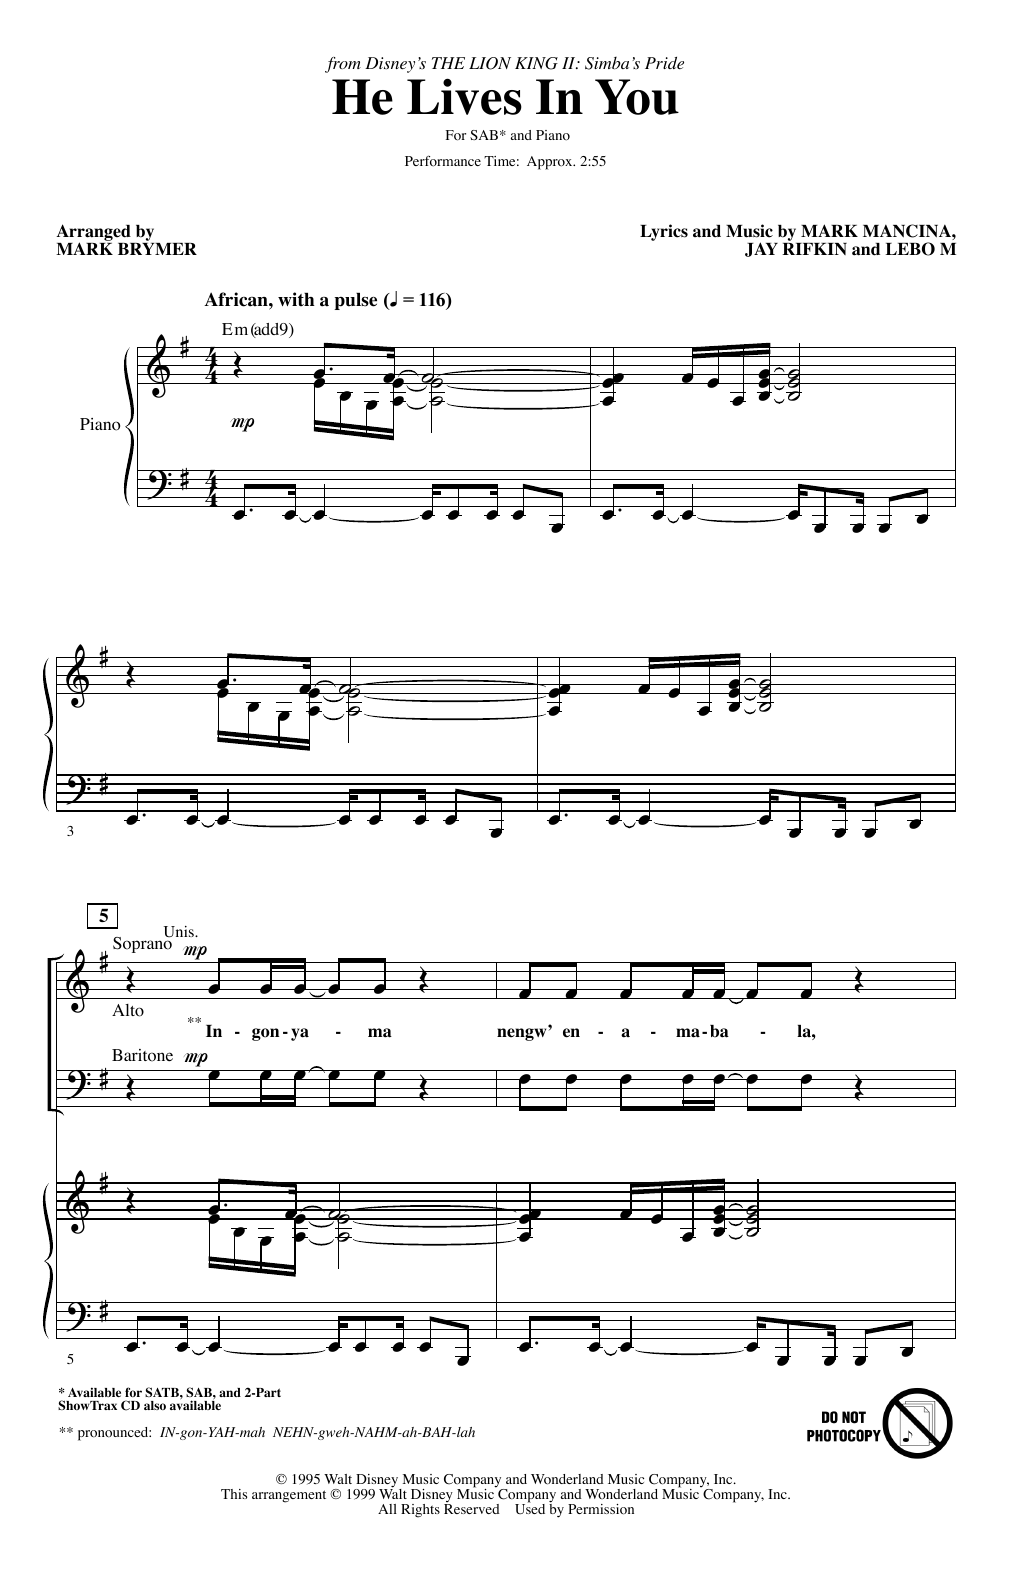 He Lives In You (from The Lion King II: Simba's Pride) (arr. Mark Brymer) Partituras Digitales